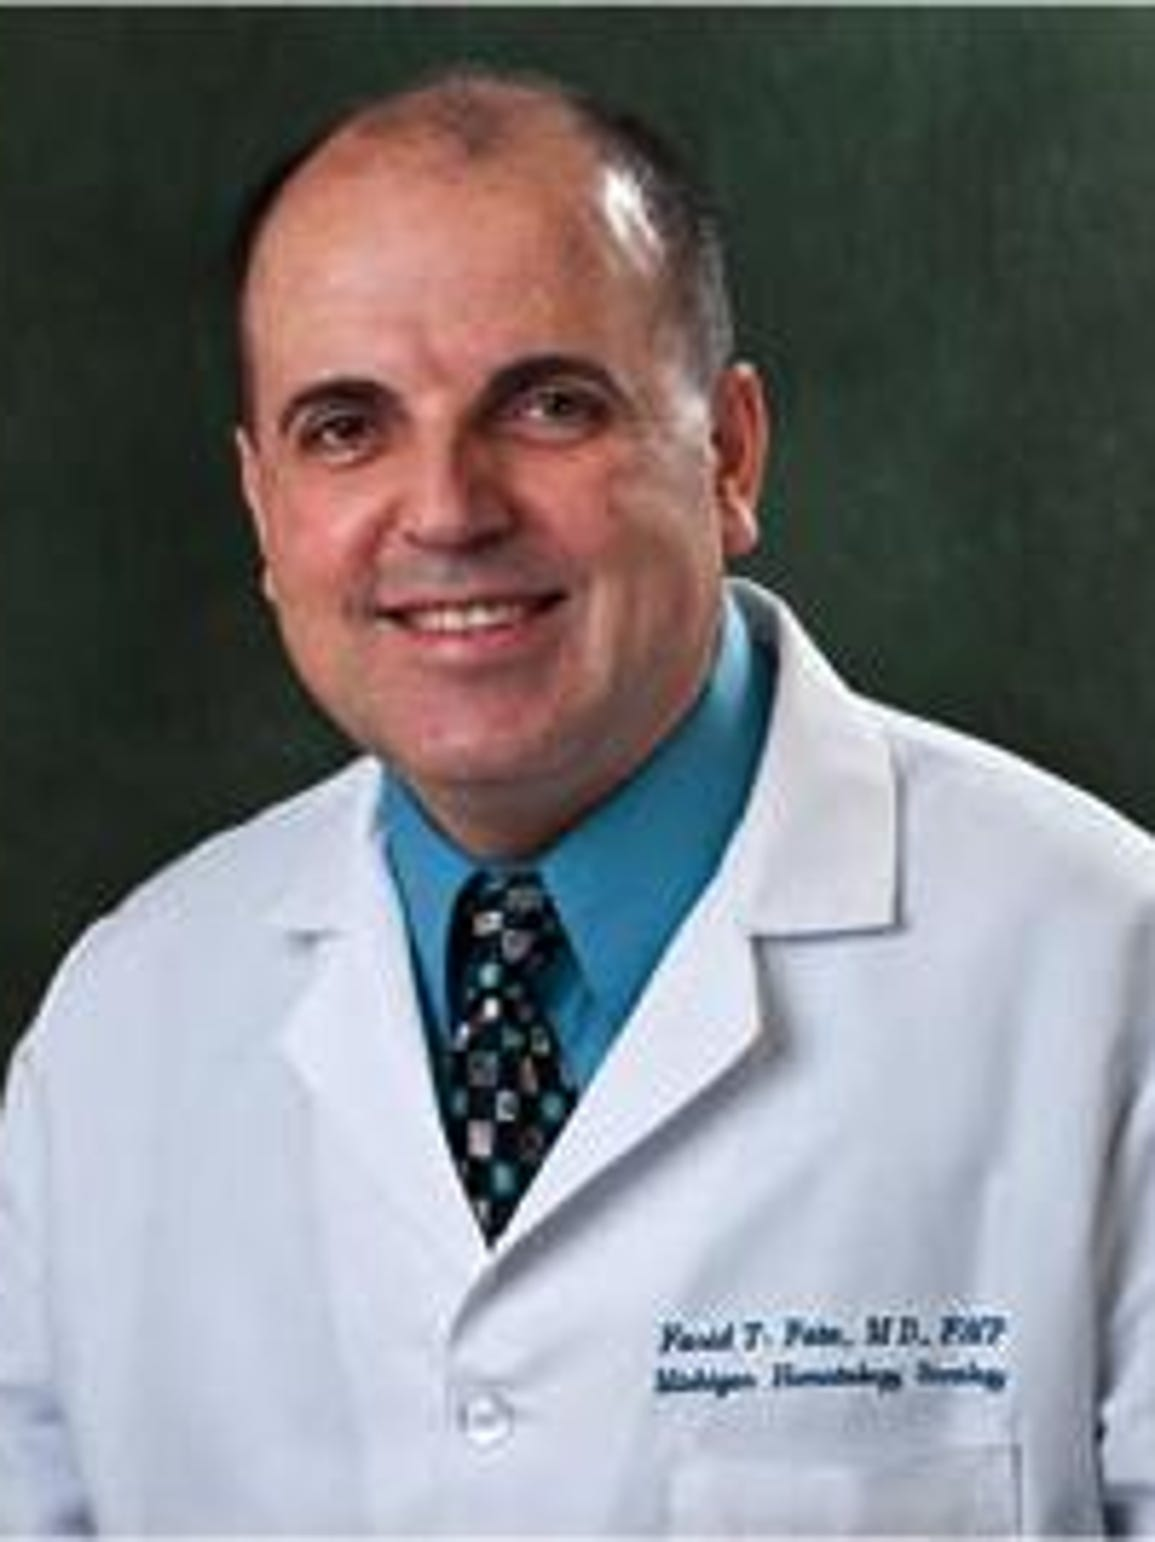 By 2013, Dr. Farid Fata operated Michigan's largest